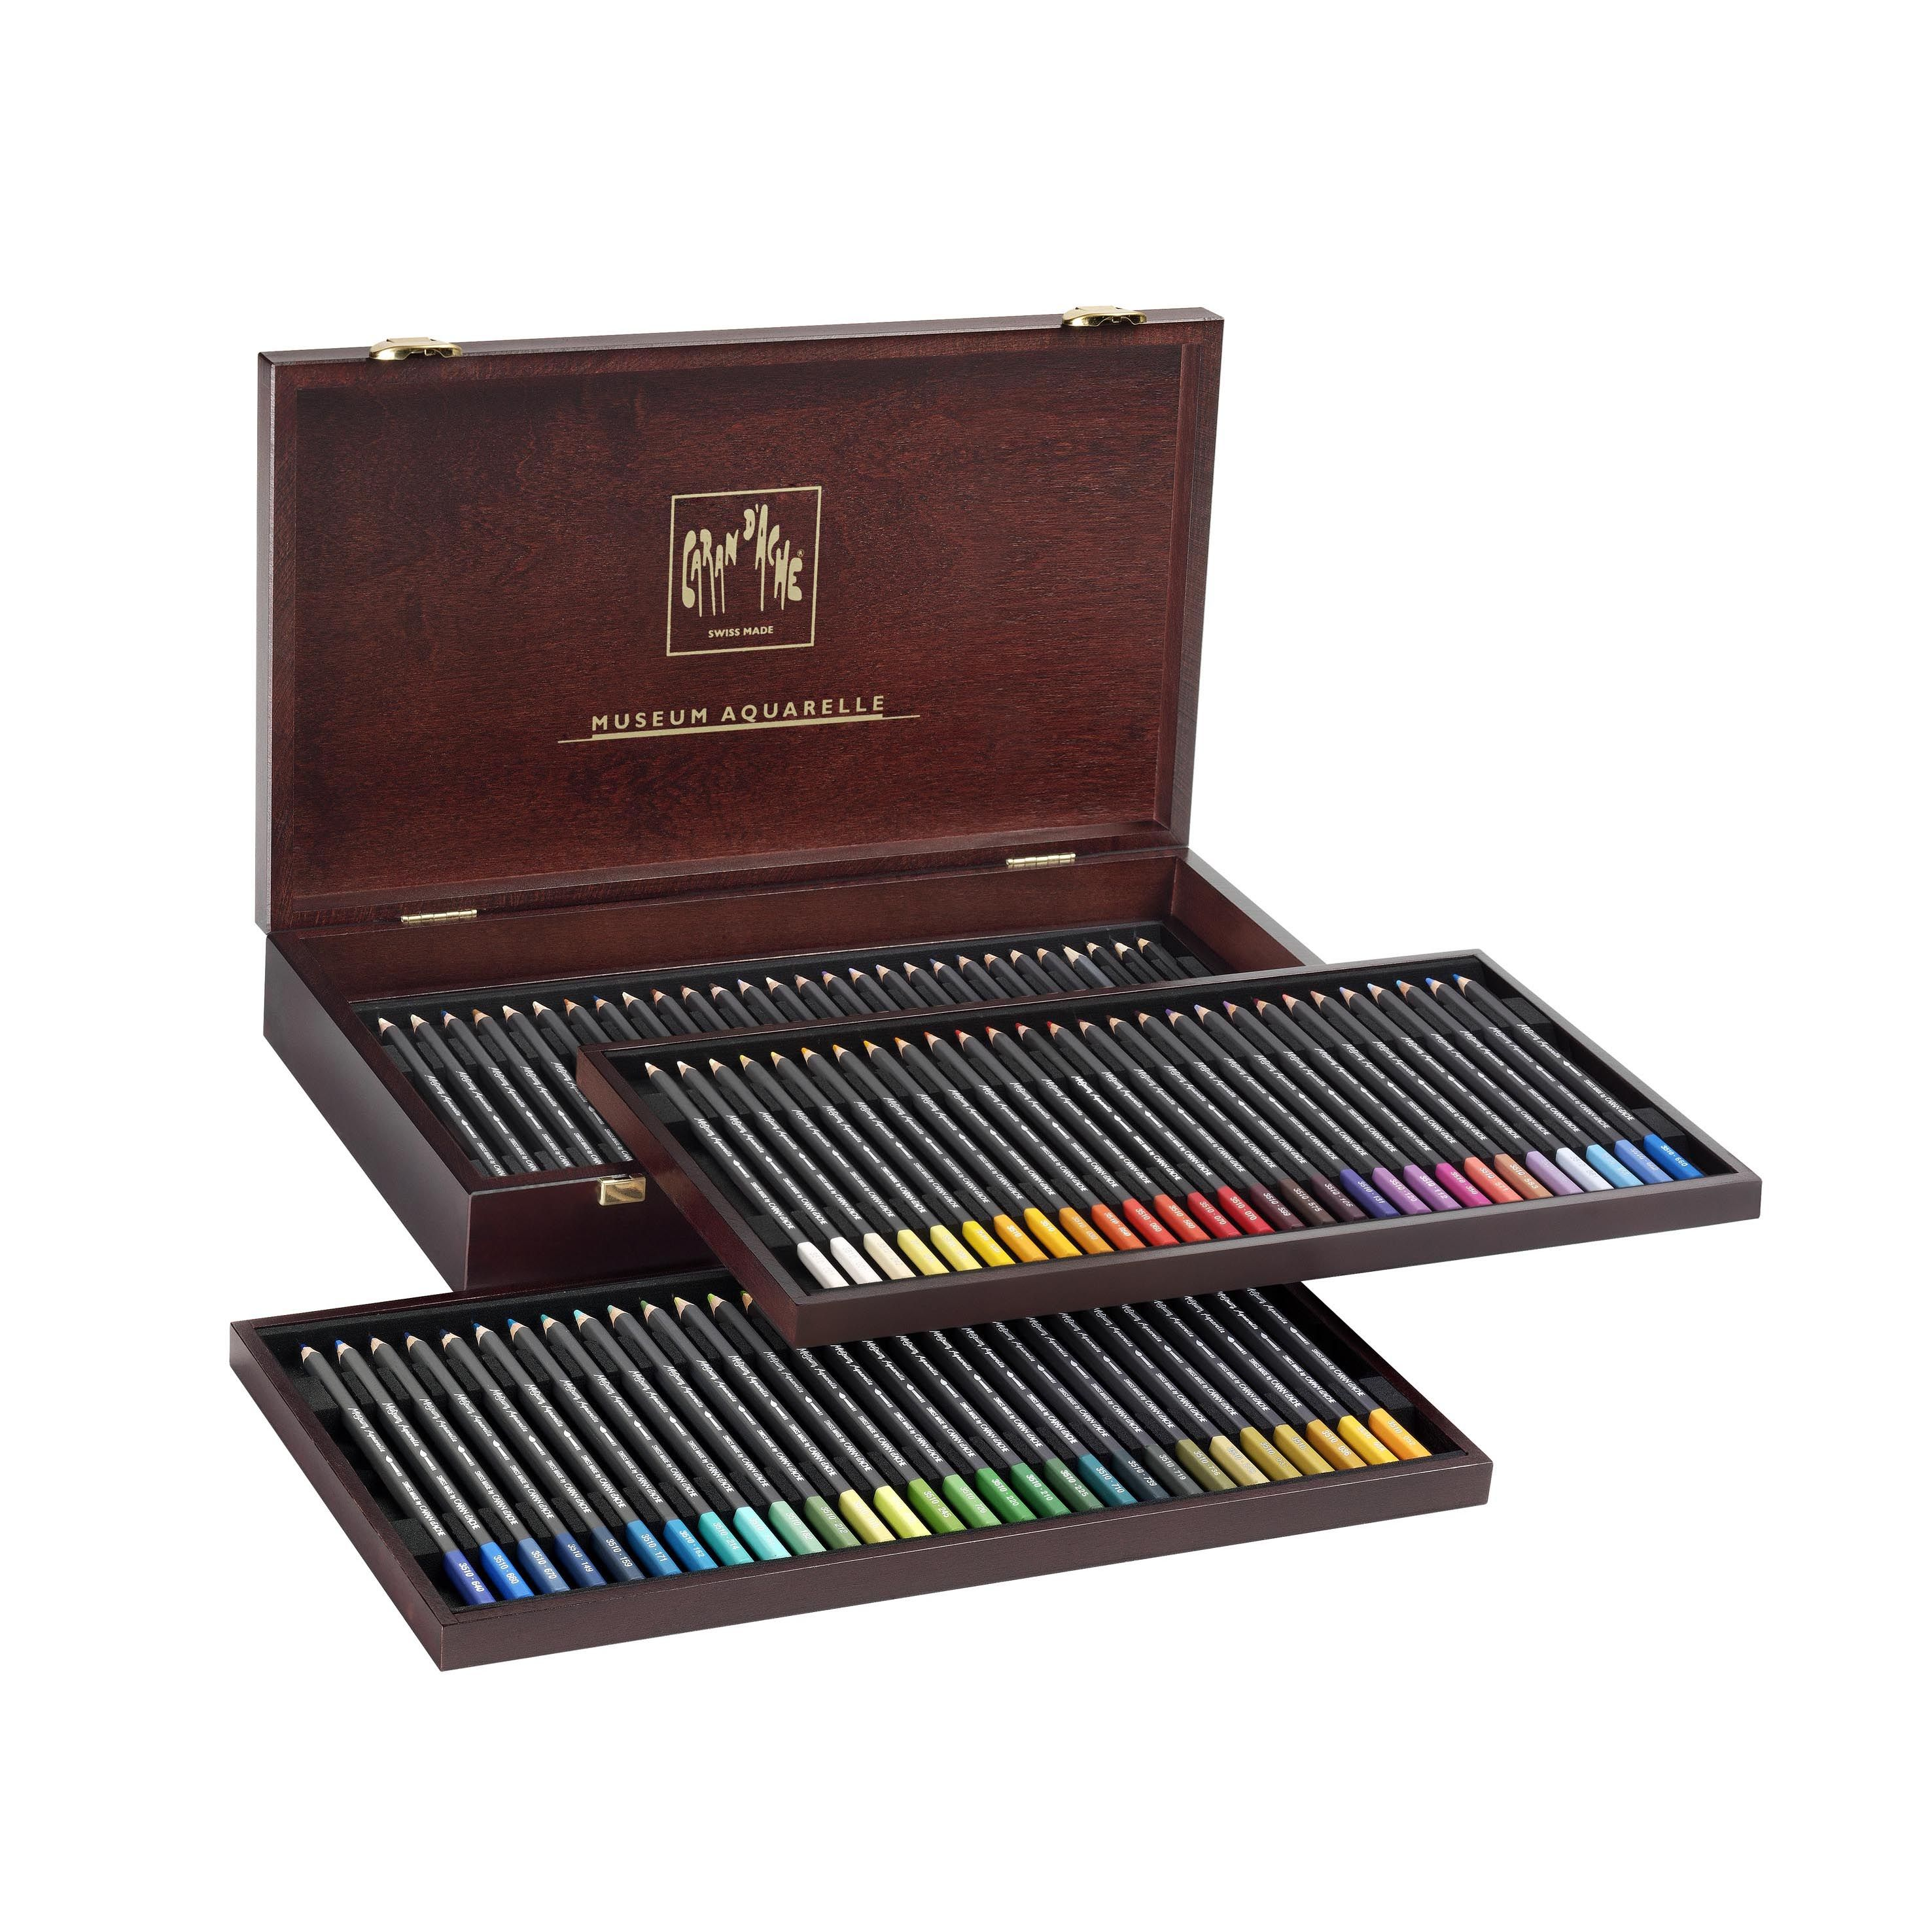 Museum Aquarelle 76 Pencils Gift Box Aquarell Wasserfarben